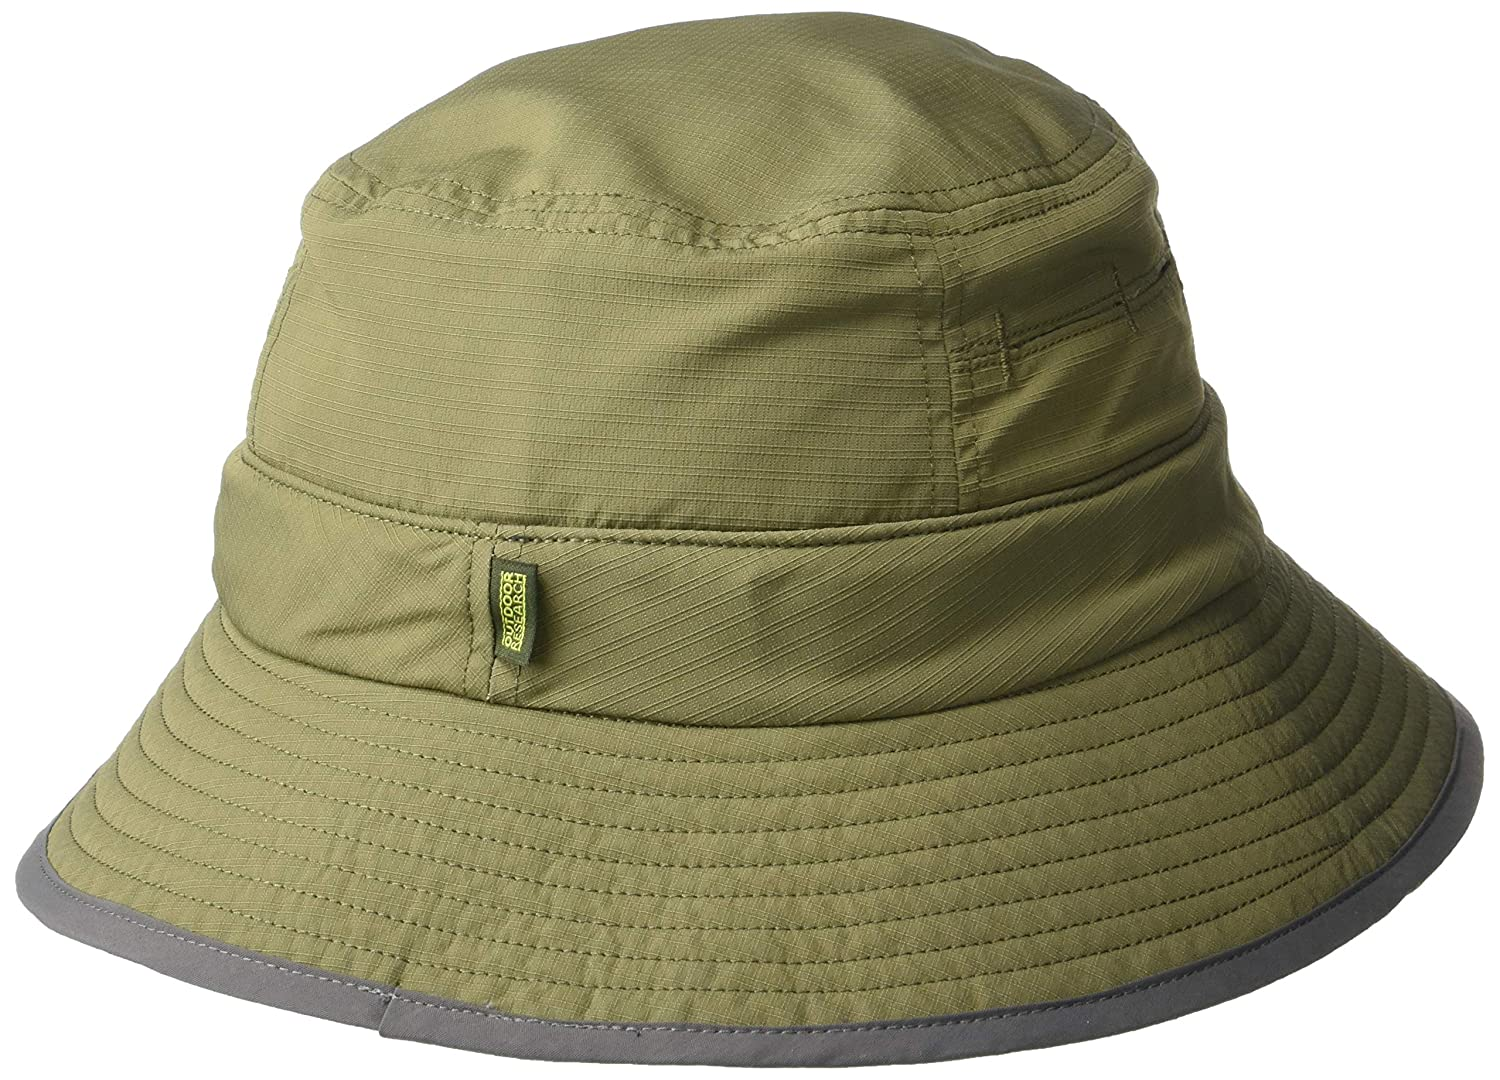 b2961df40fe Amazon.com  Outdoor Research Sombriolet Sun Hat  Clothing